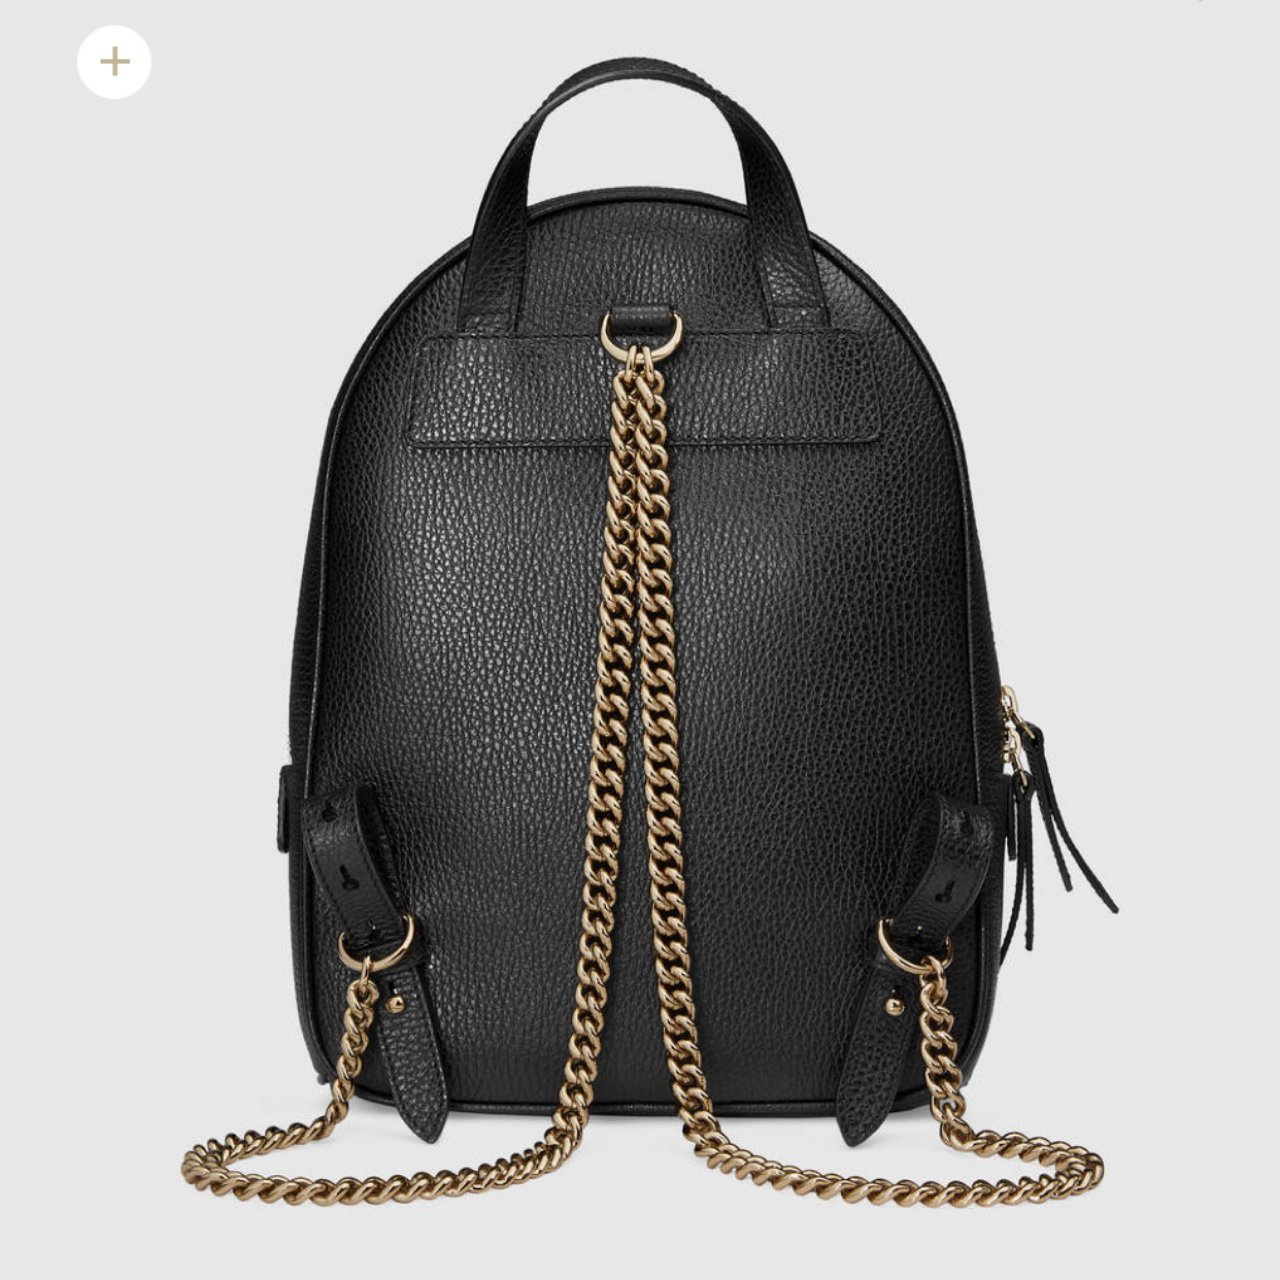 Gucci Soho Chain Backpack In PERFECT condition worn once 72362715e51ac